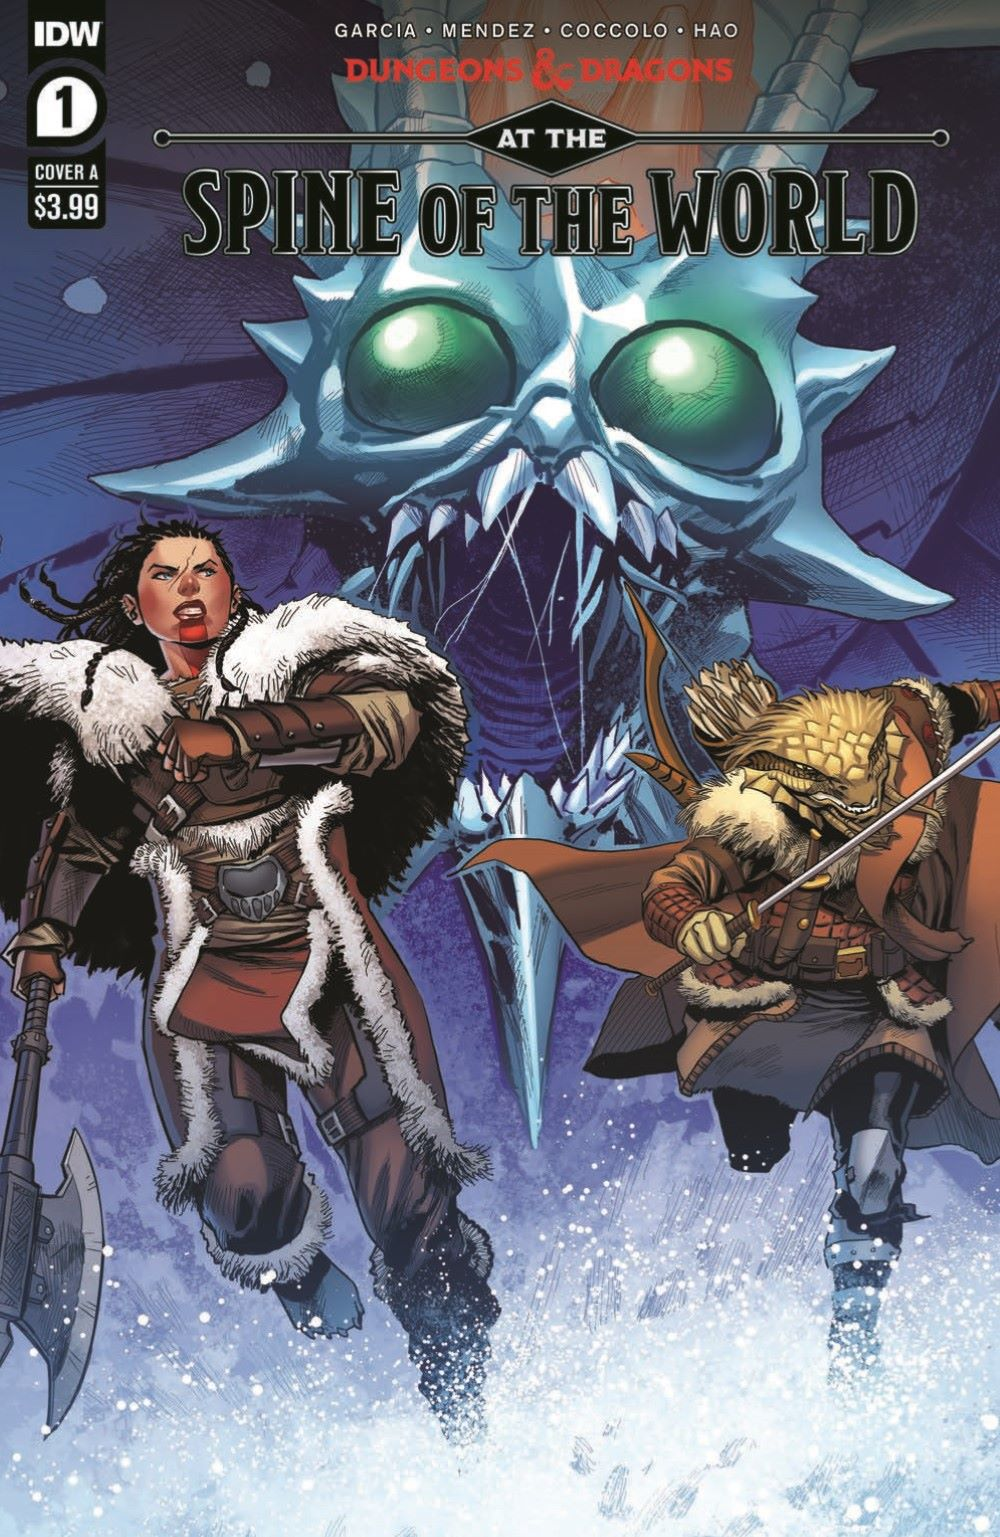 DD_ATSOTW01-pr-1 ComicList Previews: DUNGEONS AND DRAGONS AT THE SPINE OF THE WORLD #1 (OF 4)